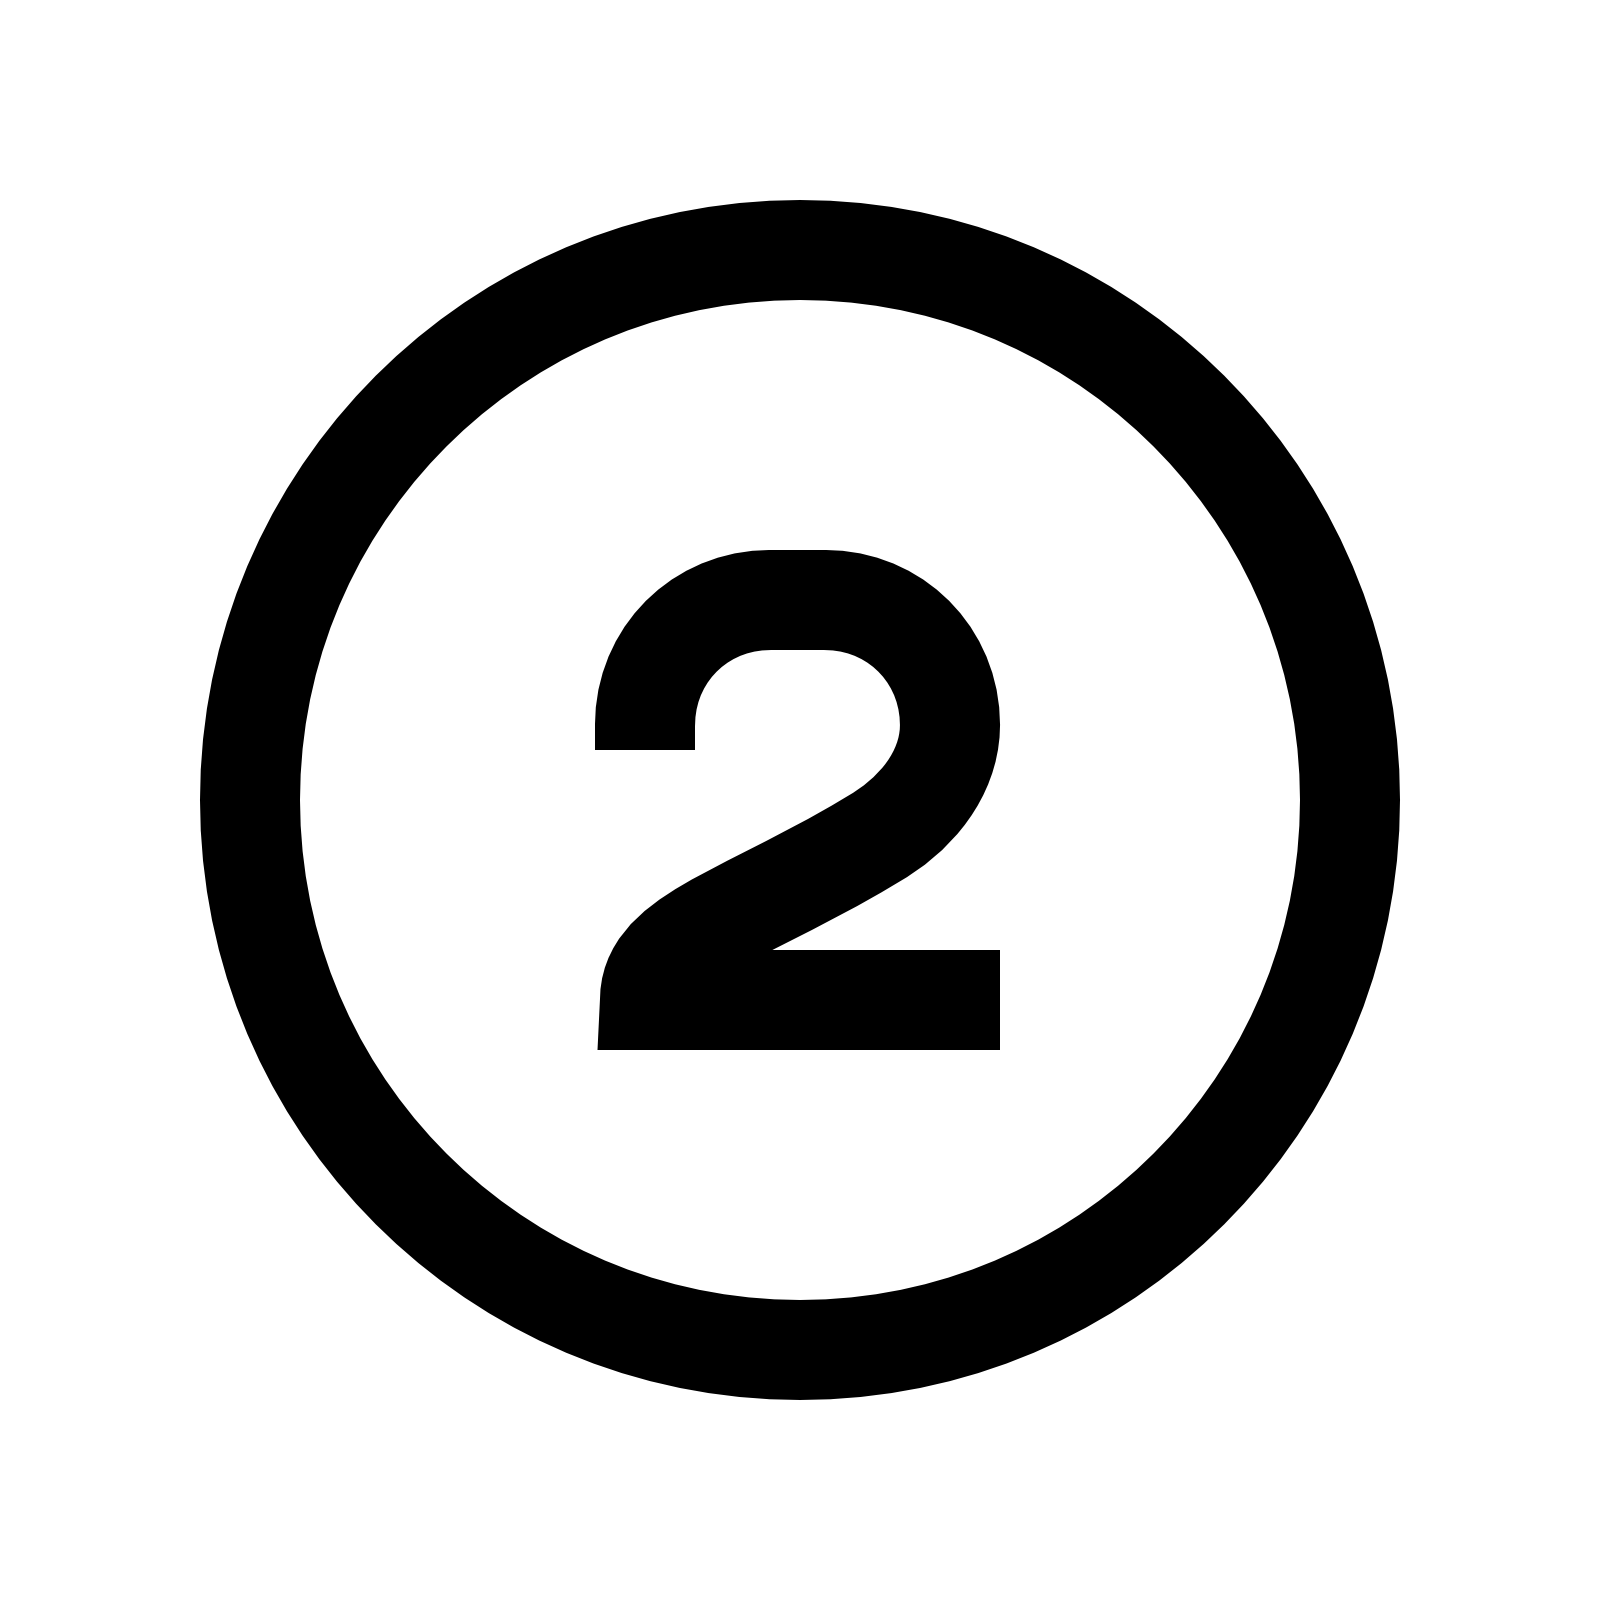 Number 2 icon png. Images of at spacehero